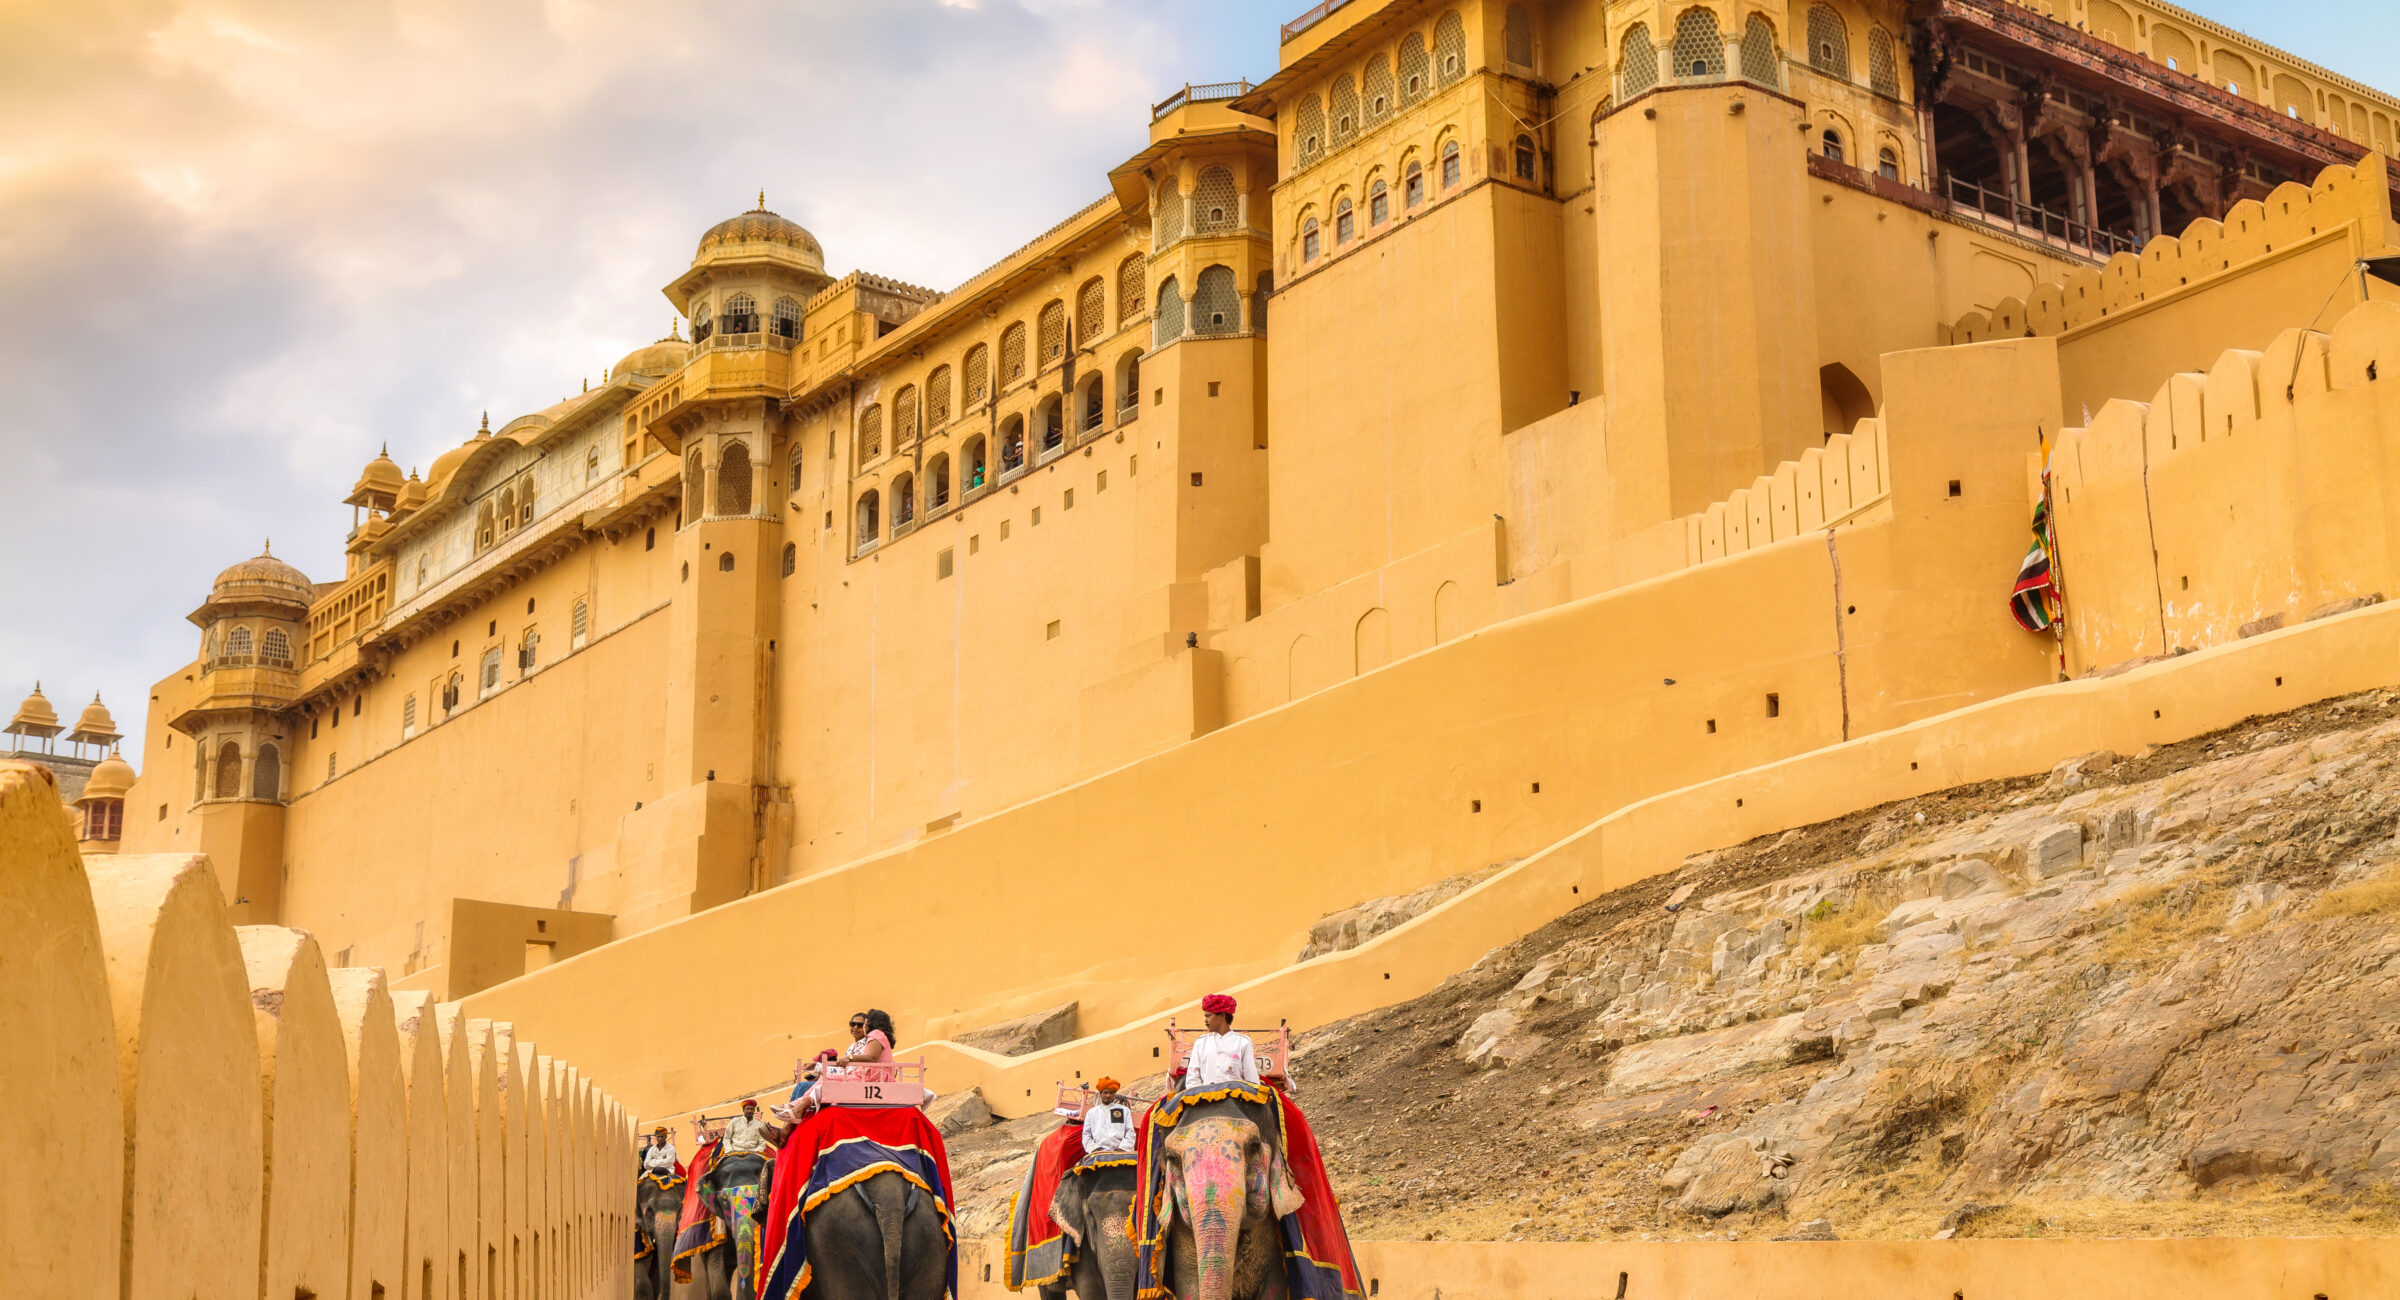 Jaipur, Rajasthan, India, December 11,2017: Tourists enter the historic Amber Fort Jaipur on decorated Indian elephants. Amber Fort is a UNESCO World Heritage site.